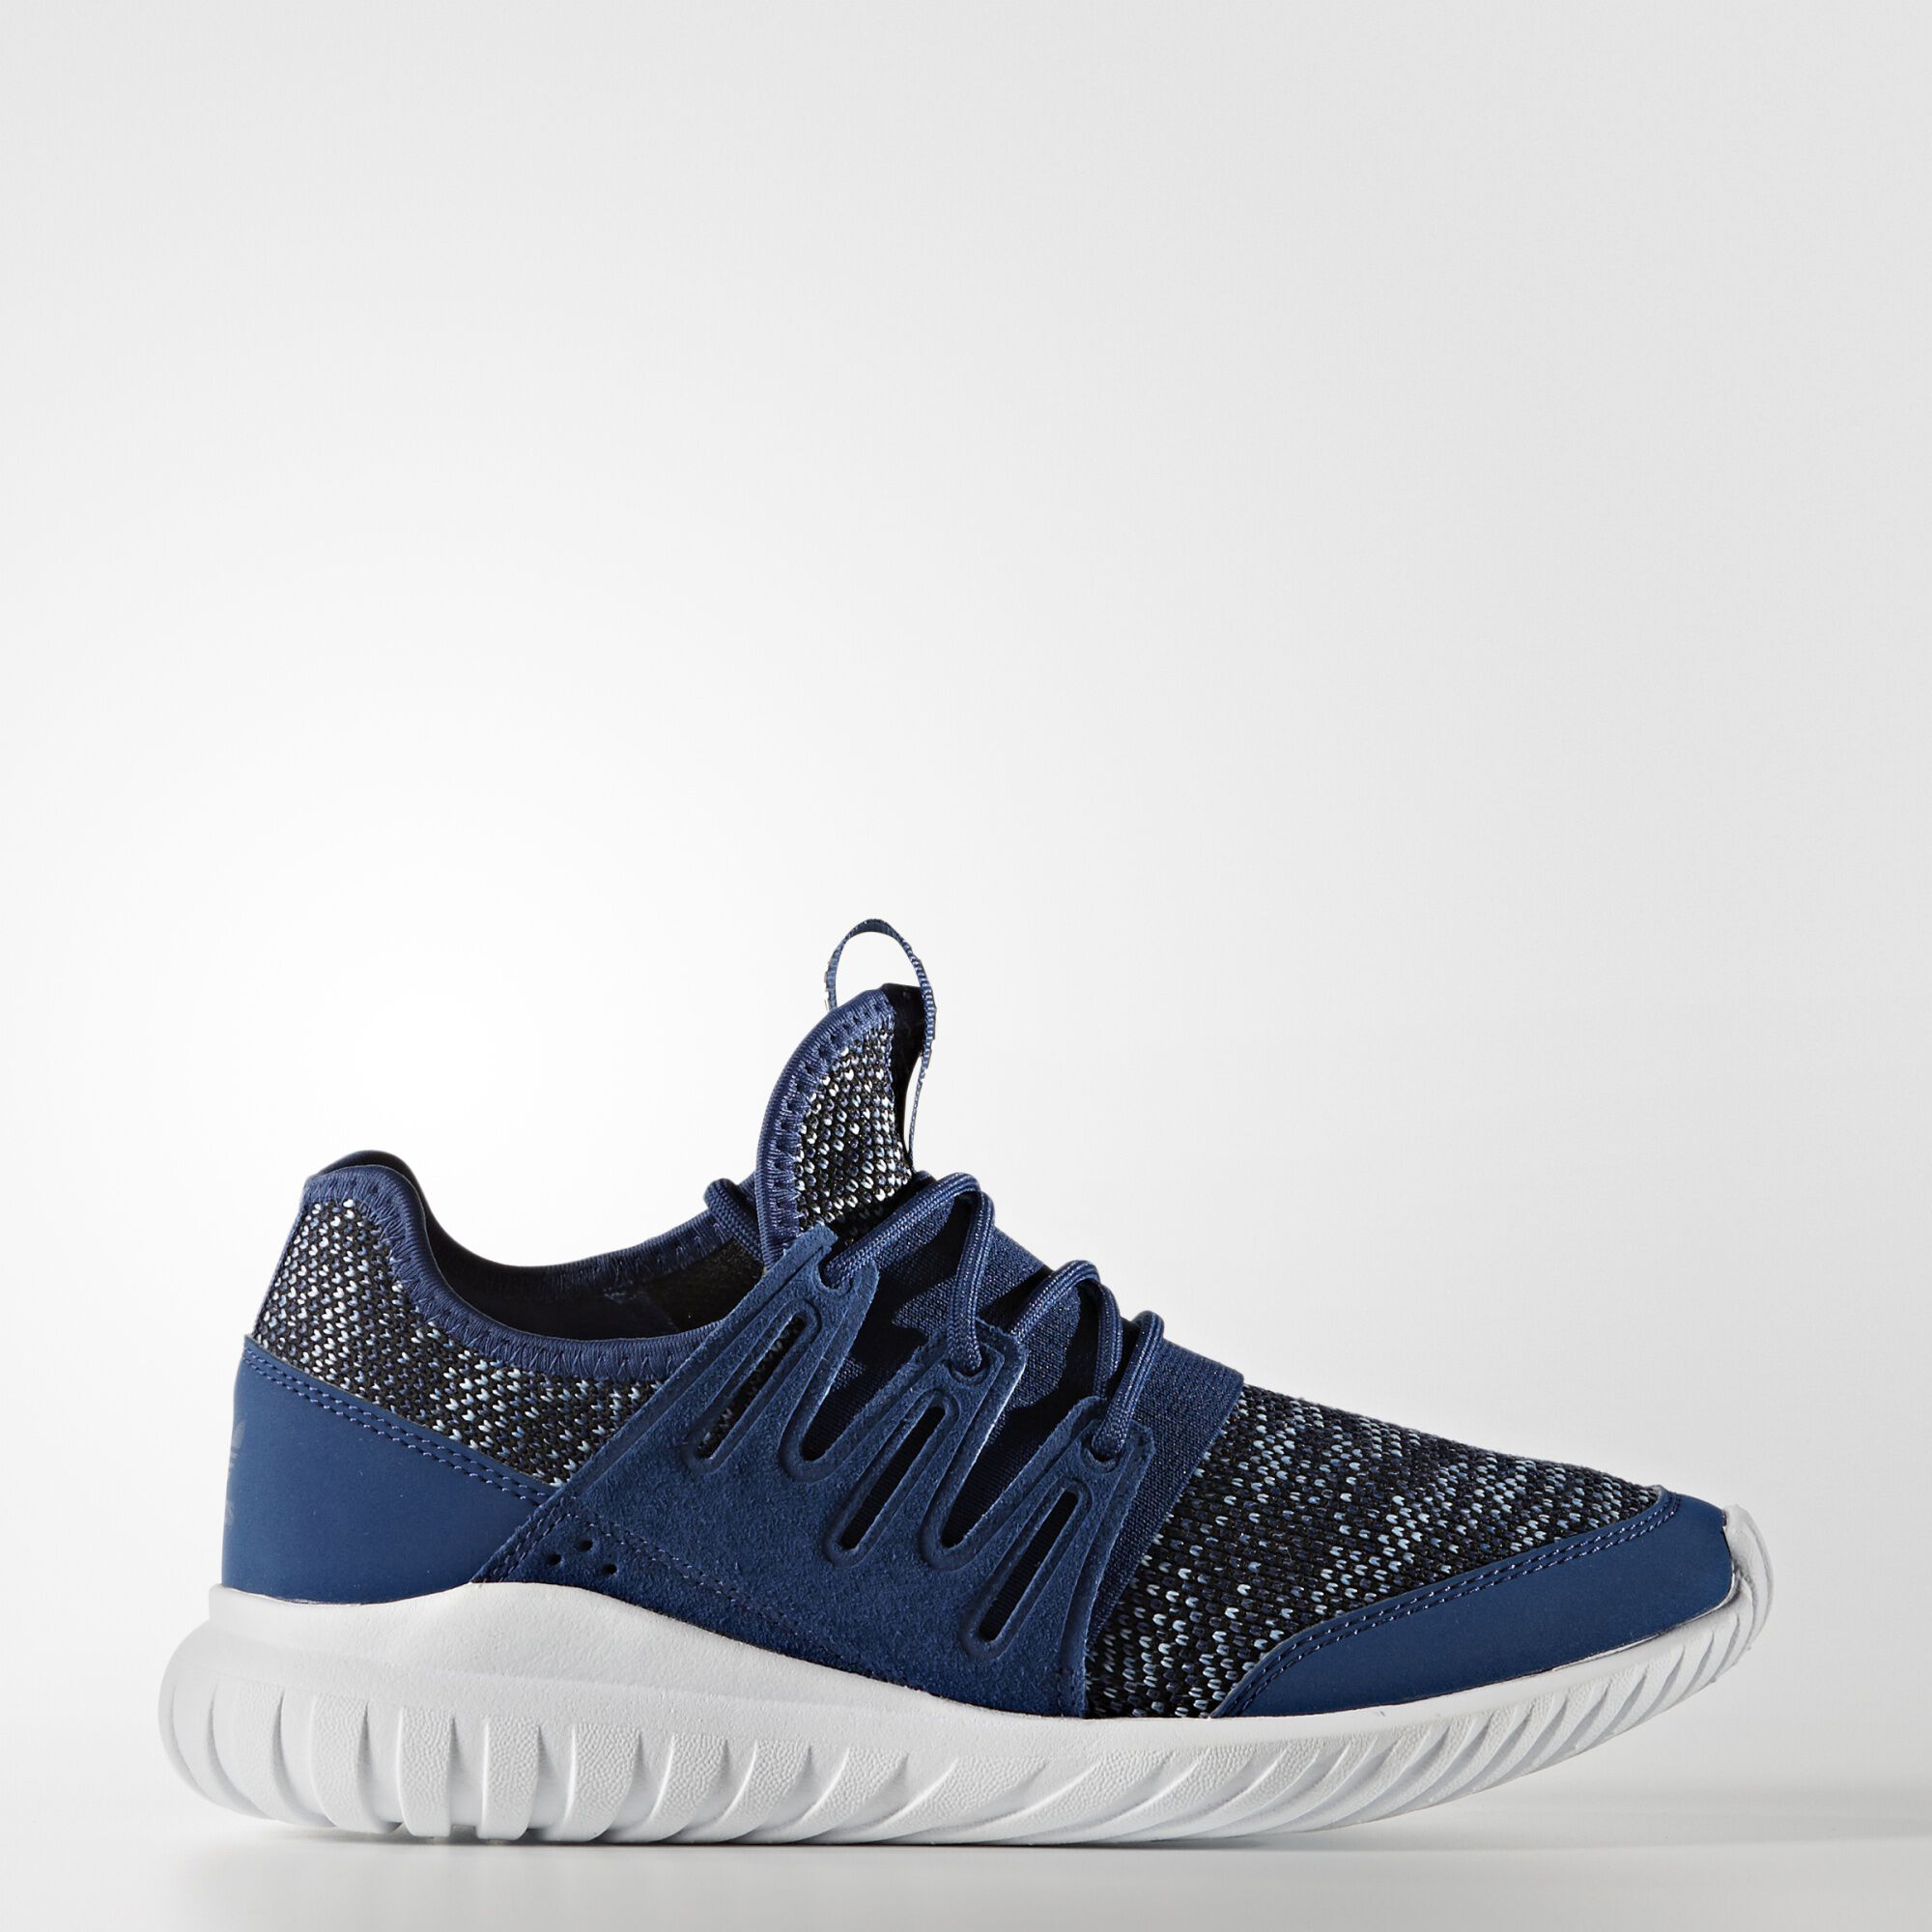 Adidas Originals Tubular Radial Boys 'Preschool Running Shoes